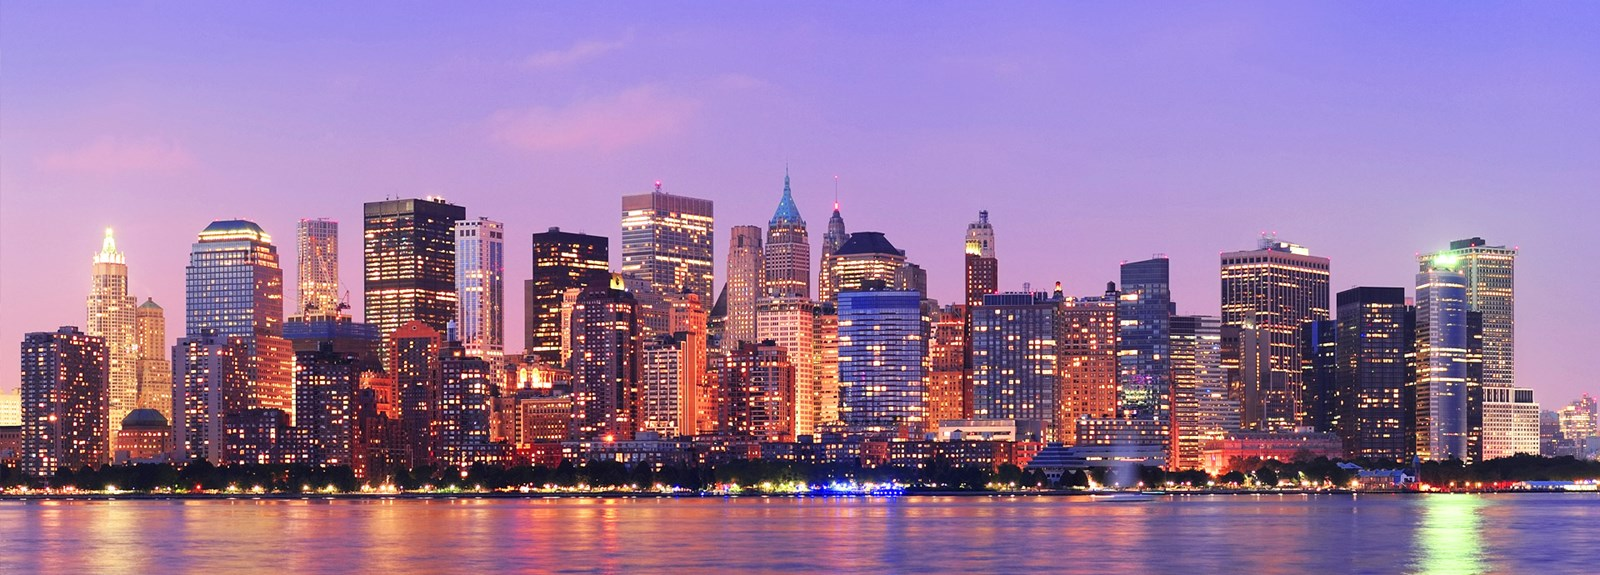 NEW YORK ESTATE 2017,Stati Uniti d'America, forum di viaggio